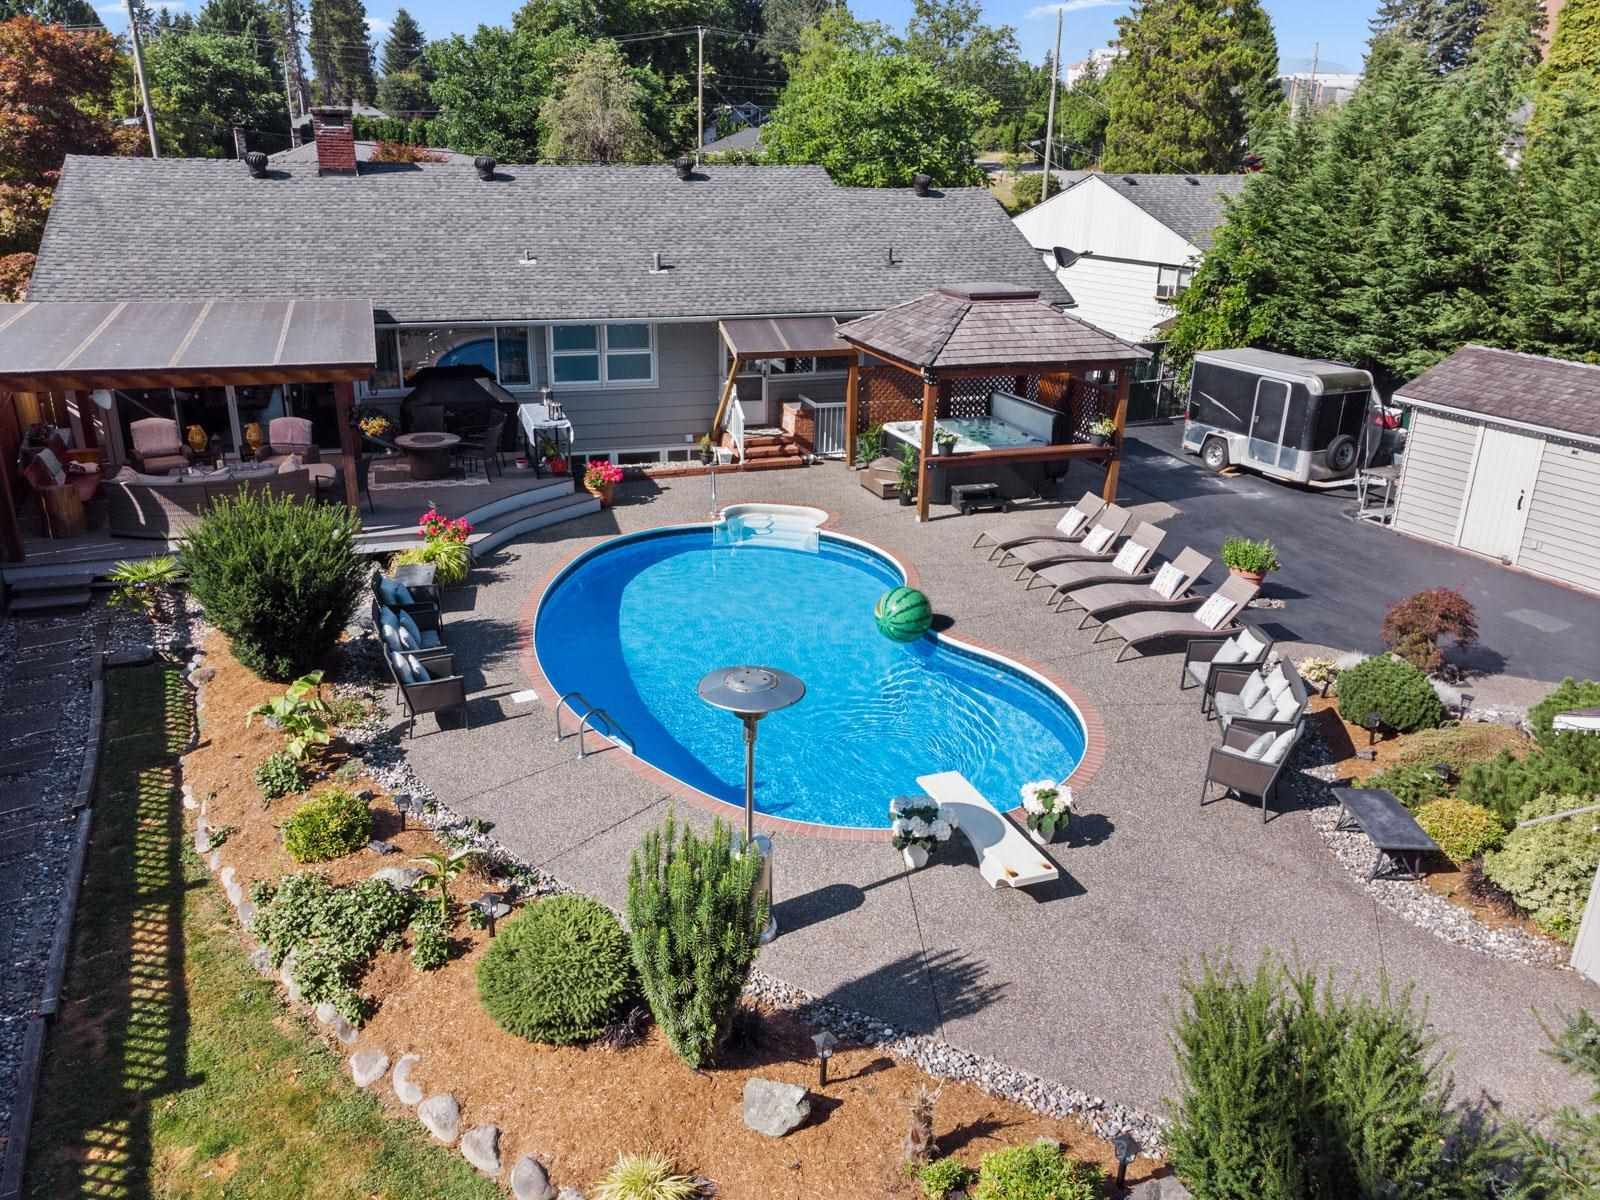 Main Photo: 22070 CLIFF Avenue in Maple Ridge: West Central House for sale : MLS®# R2602946